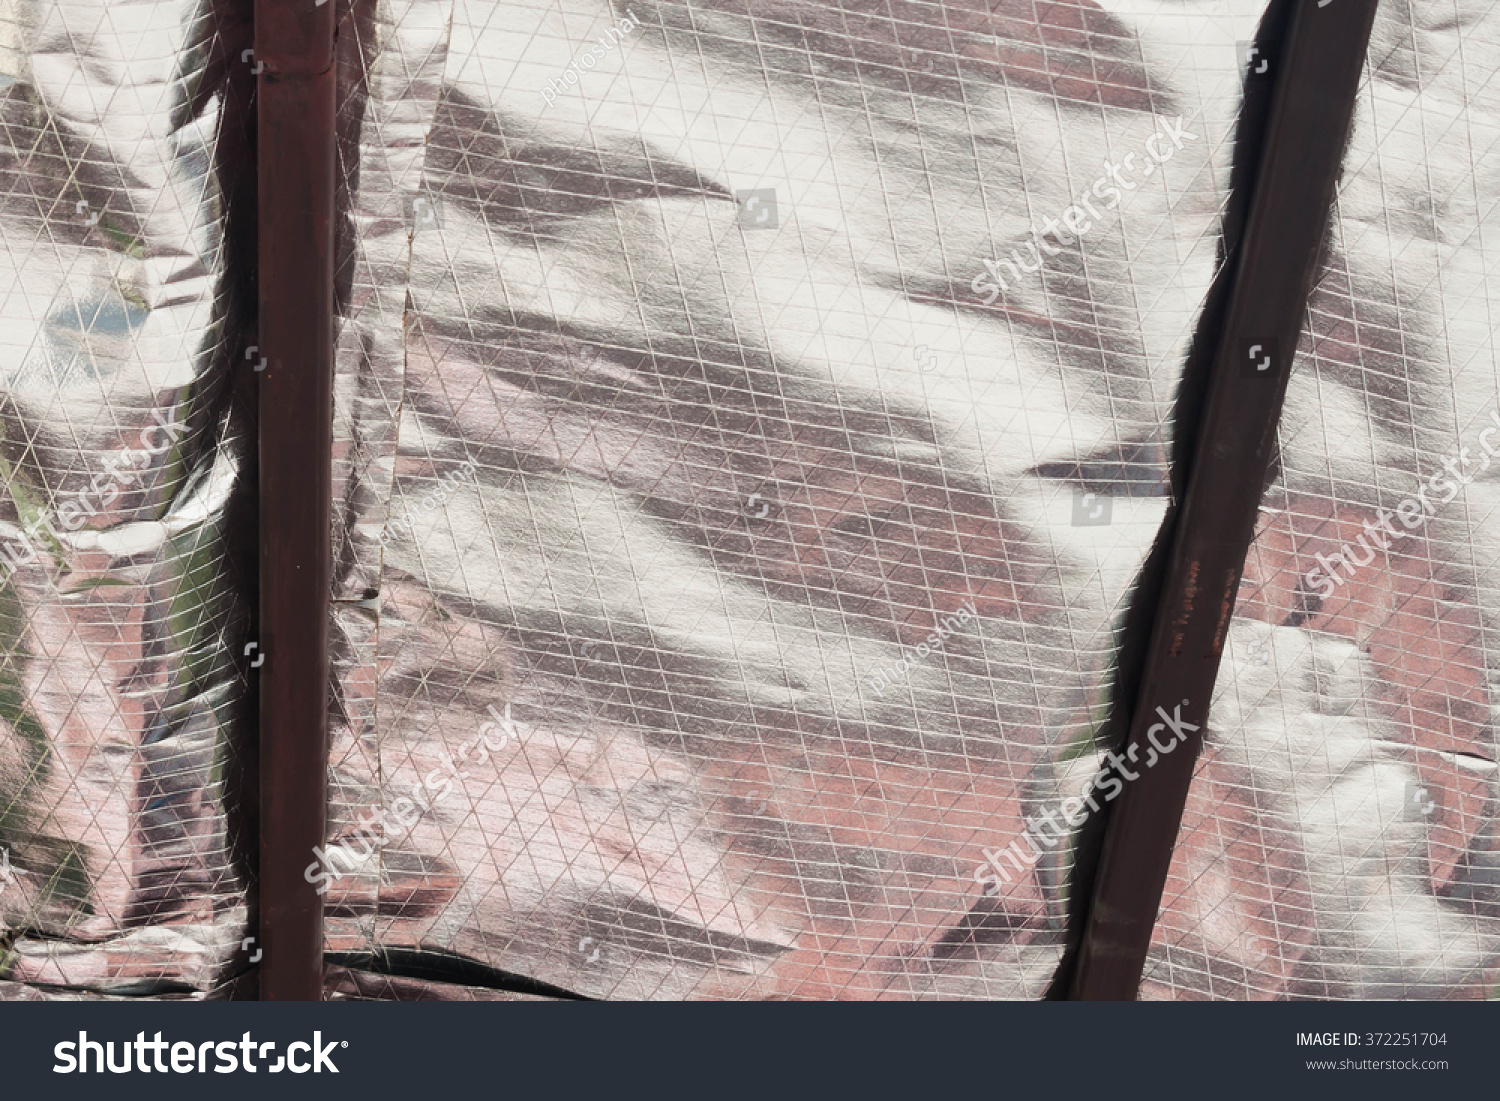 Install Aluminum Foil Sheet Insulation Under Stock Photo